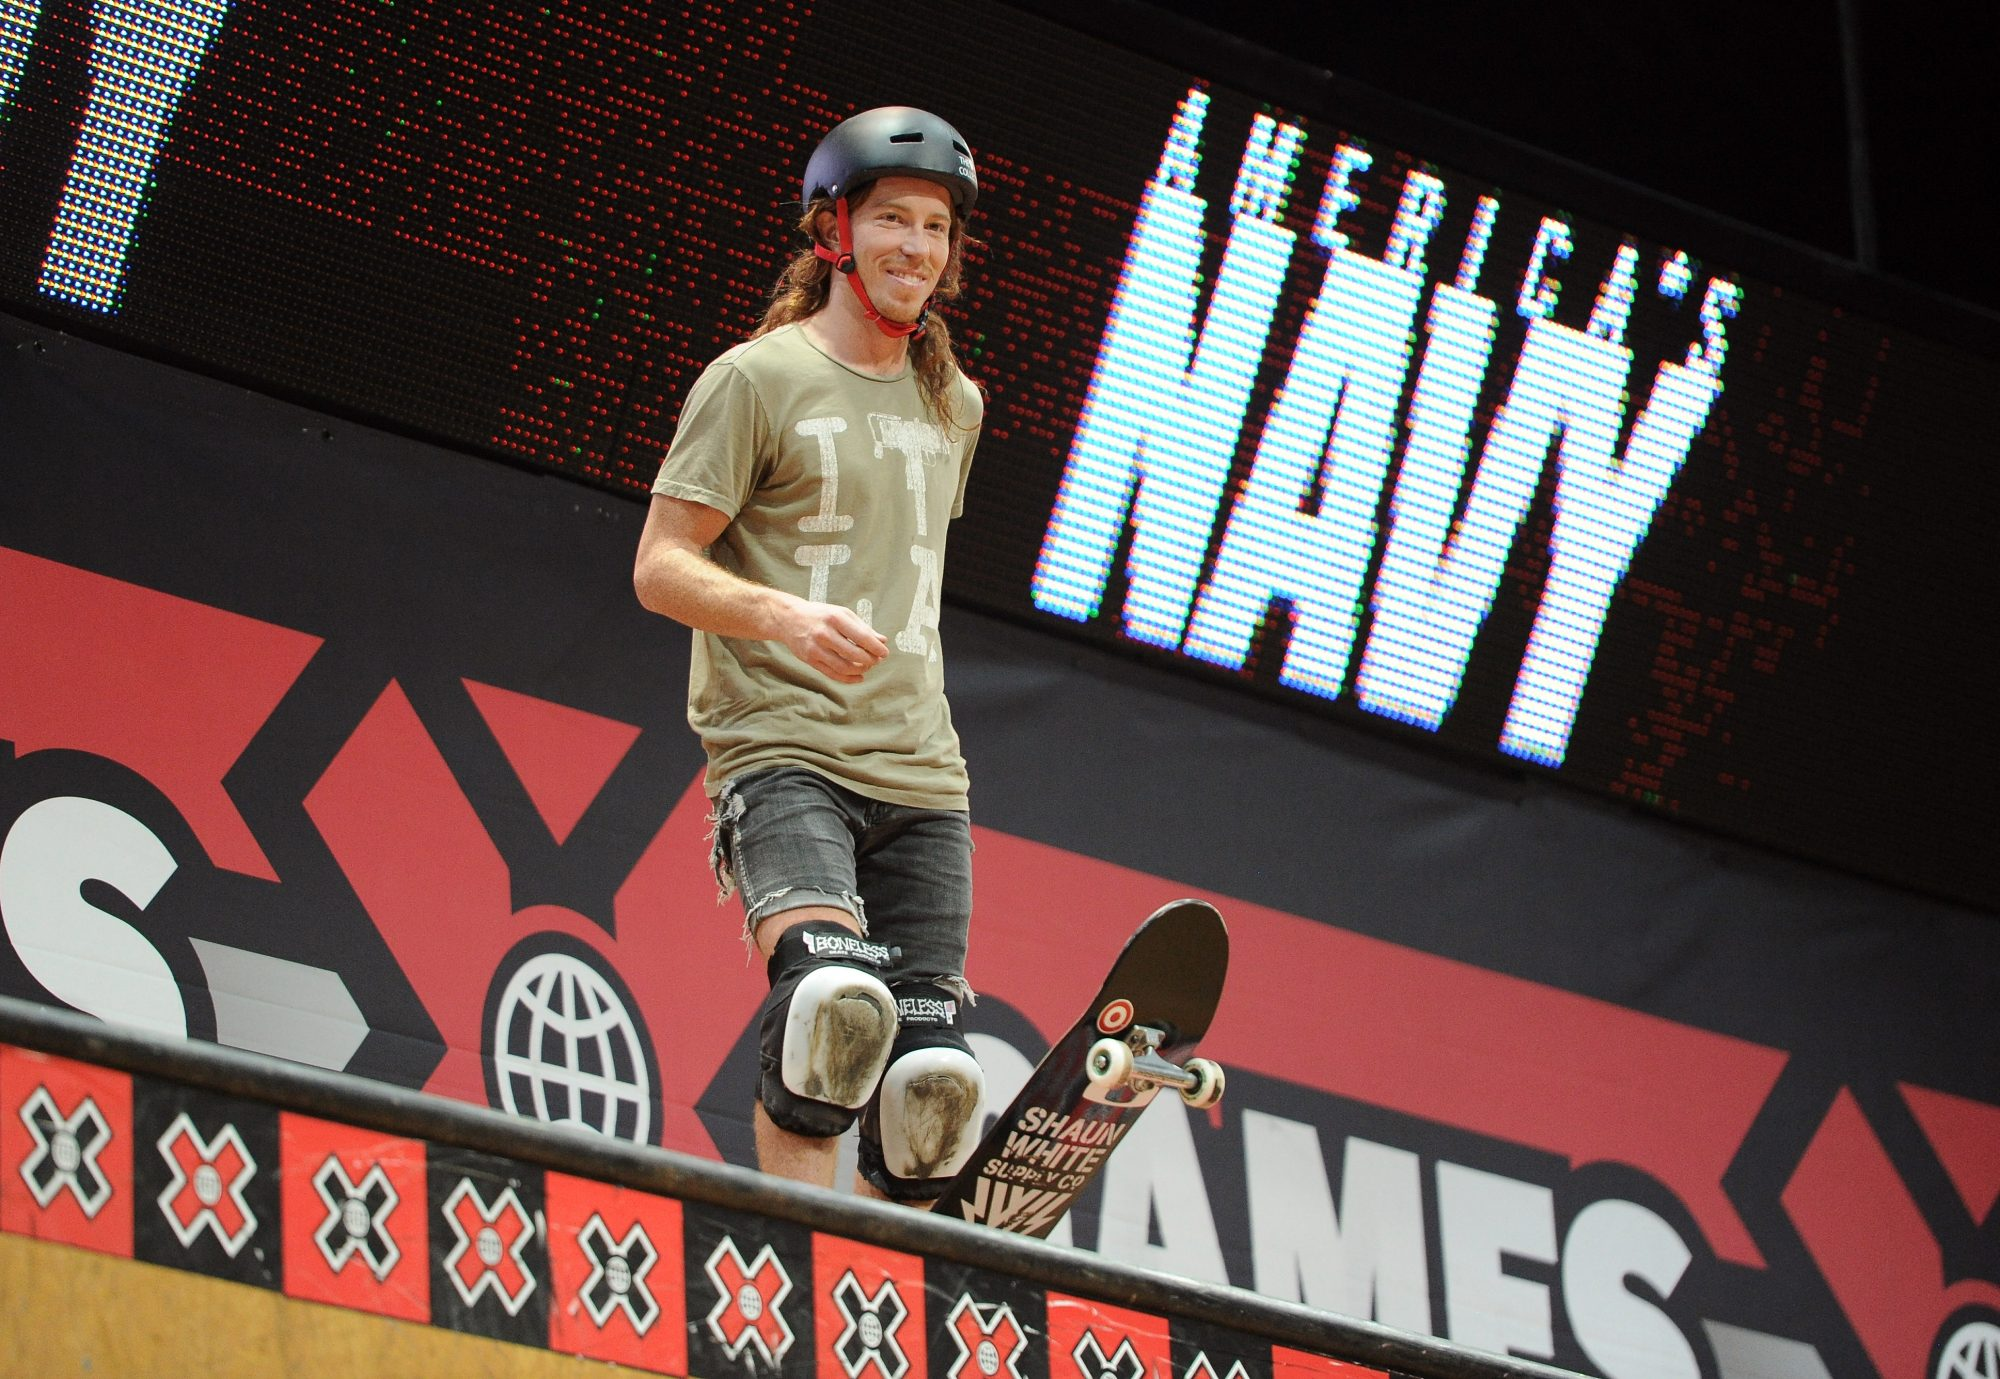 X Games 17 - Day 1